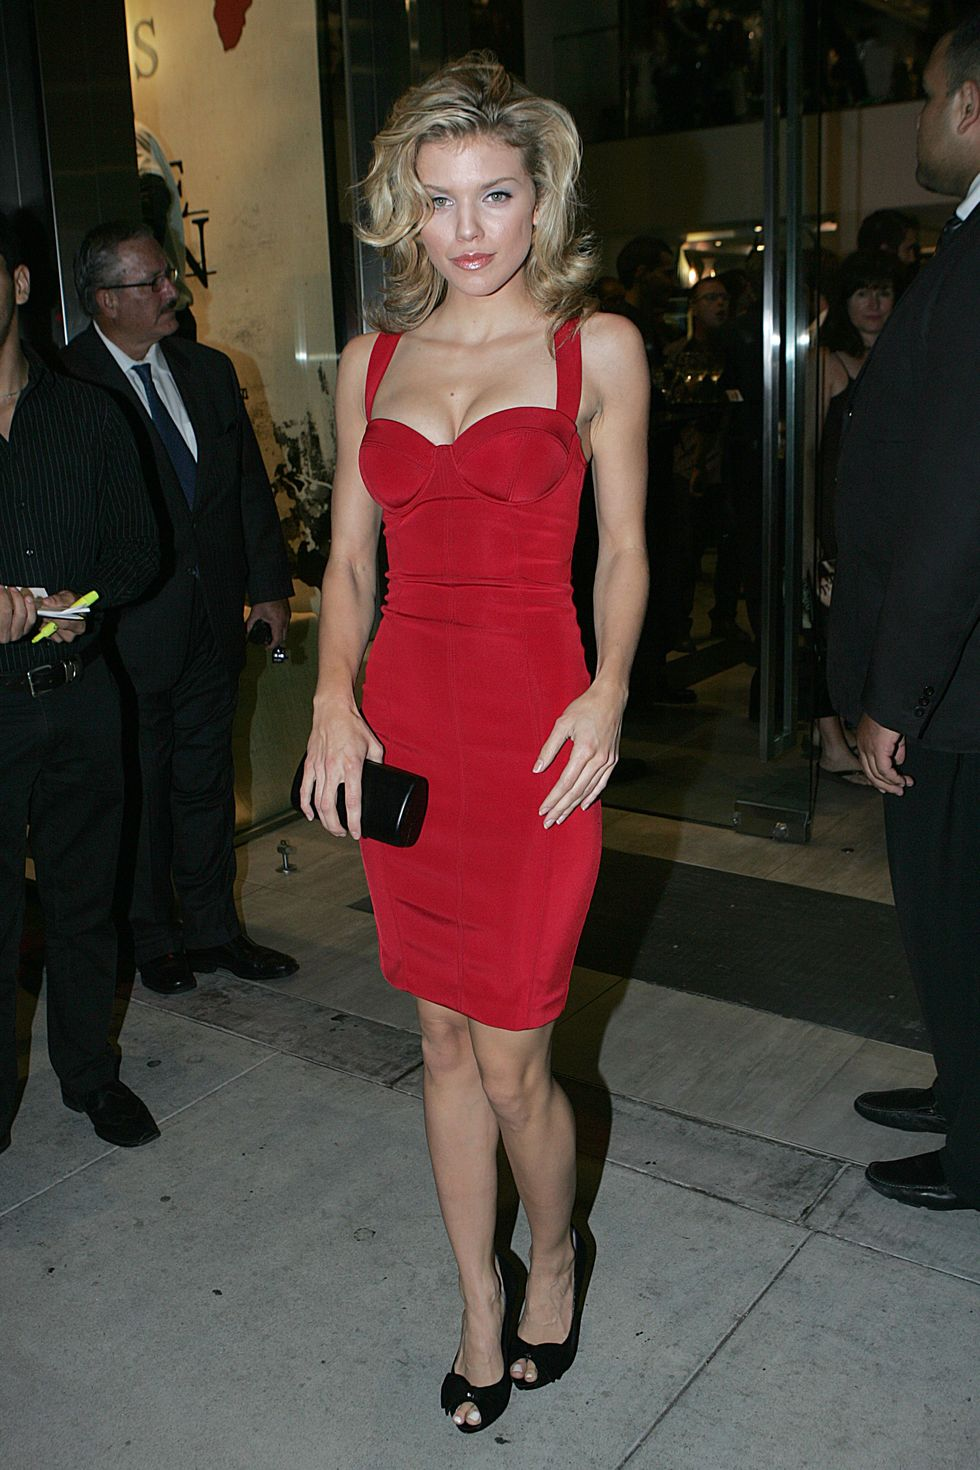 annalynne-mccord-cleavagy-in-red-dress-at-party-on-rodeo-drive-01